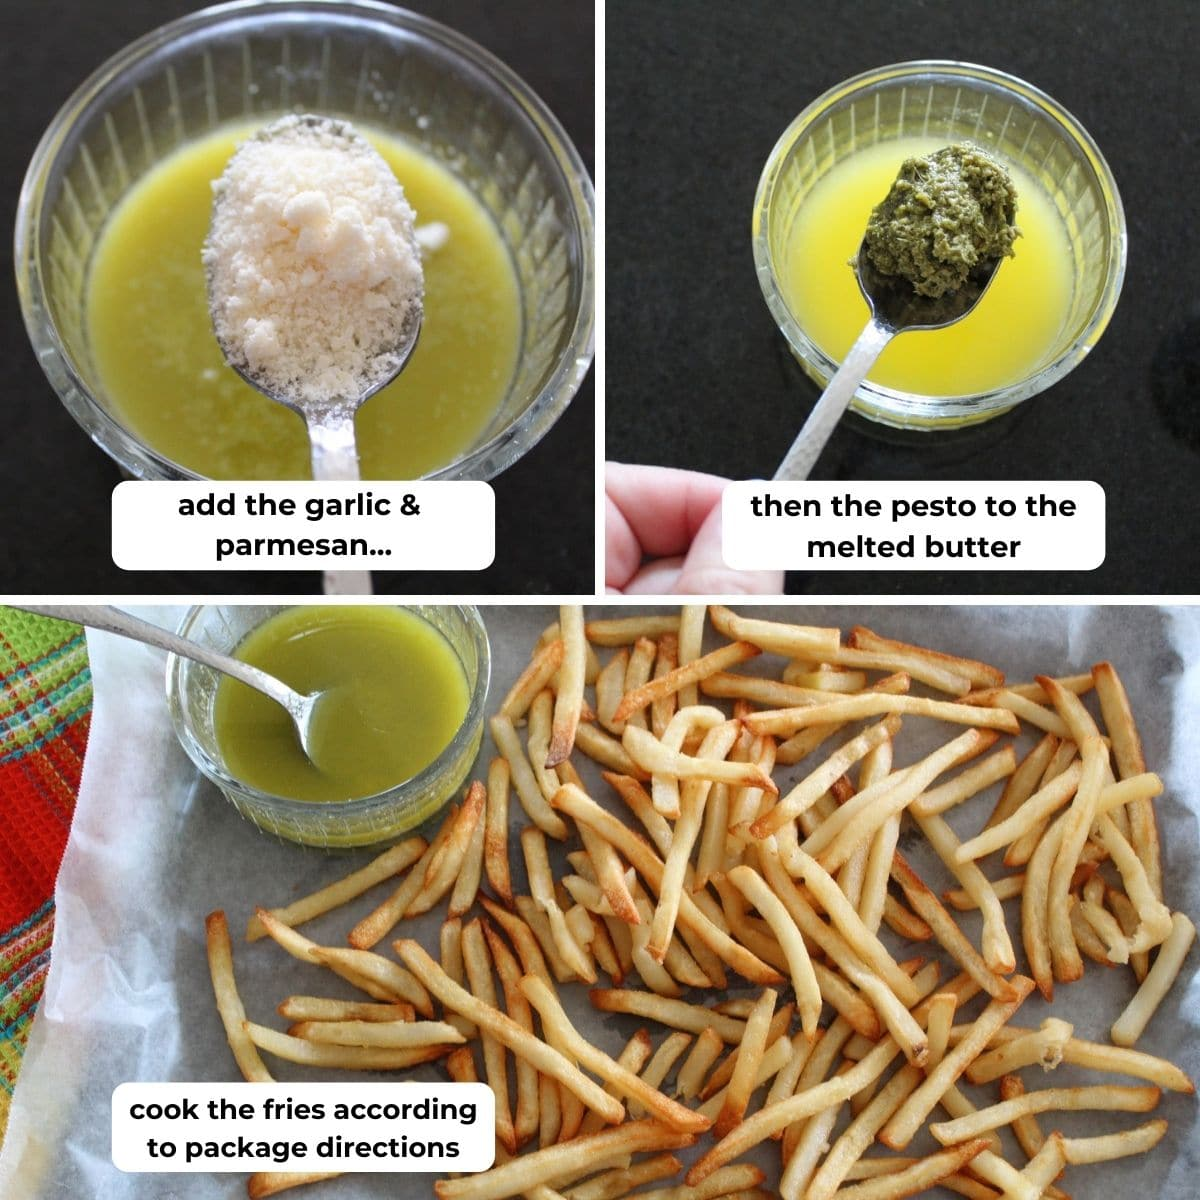 collage of three images for how to make pesto sauce to drizzle over French fries. descriptive text box overlay in each image.